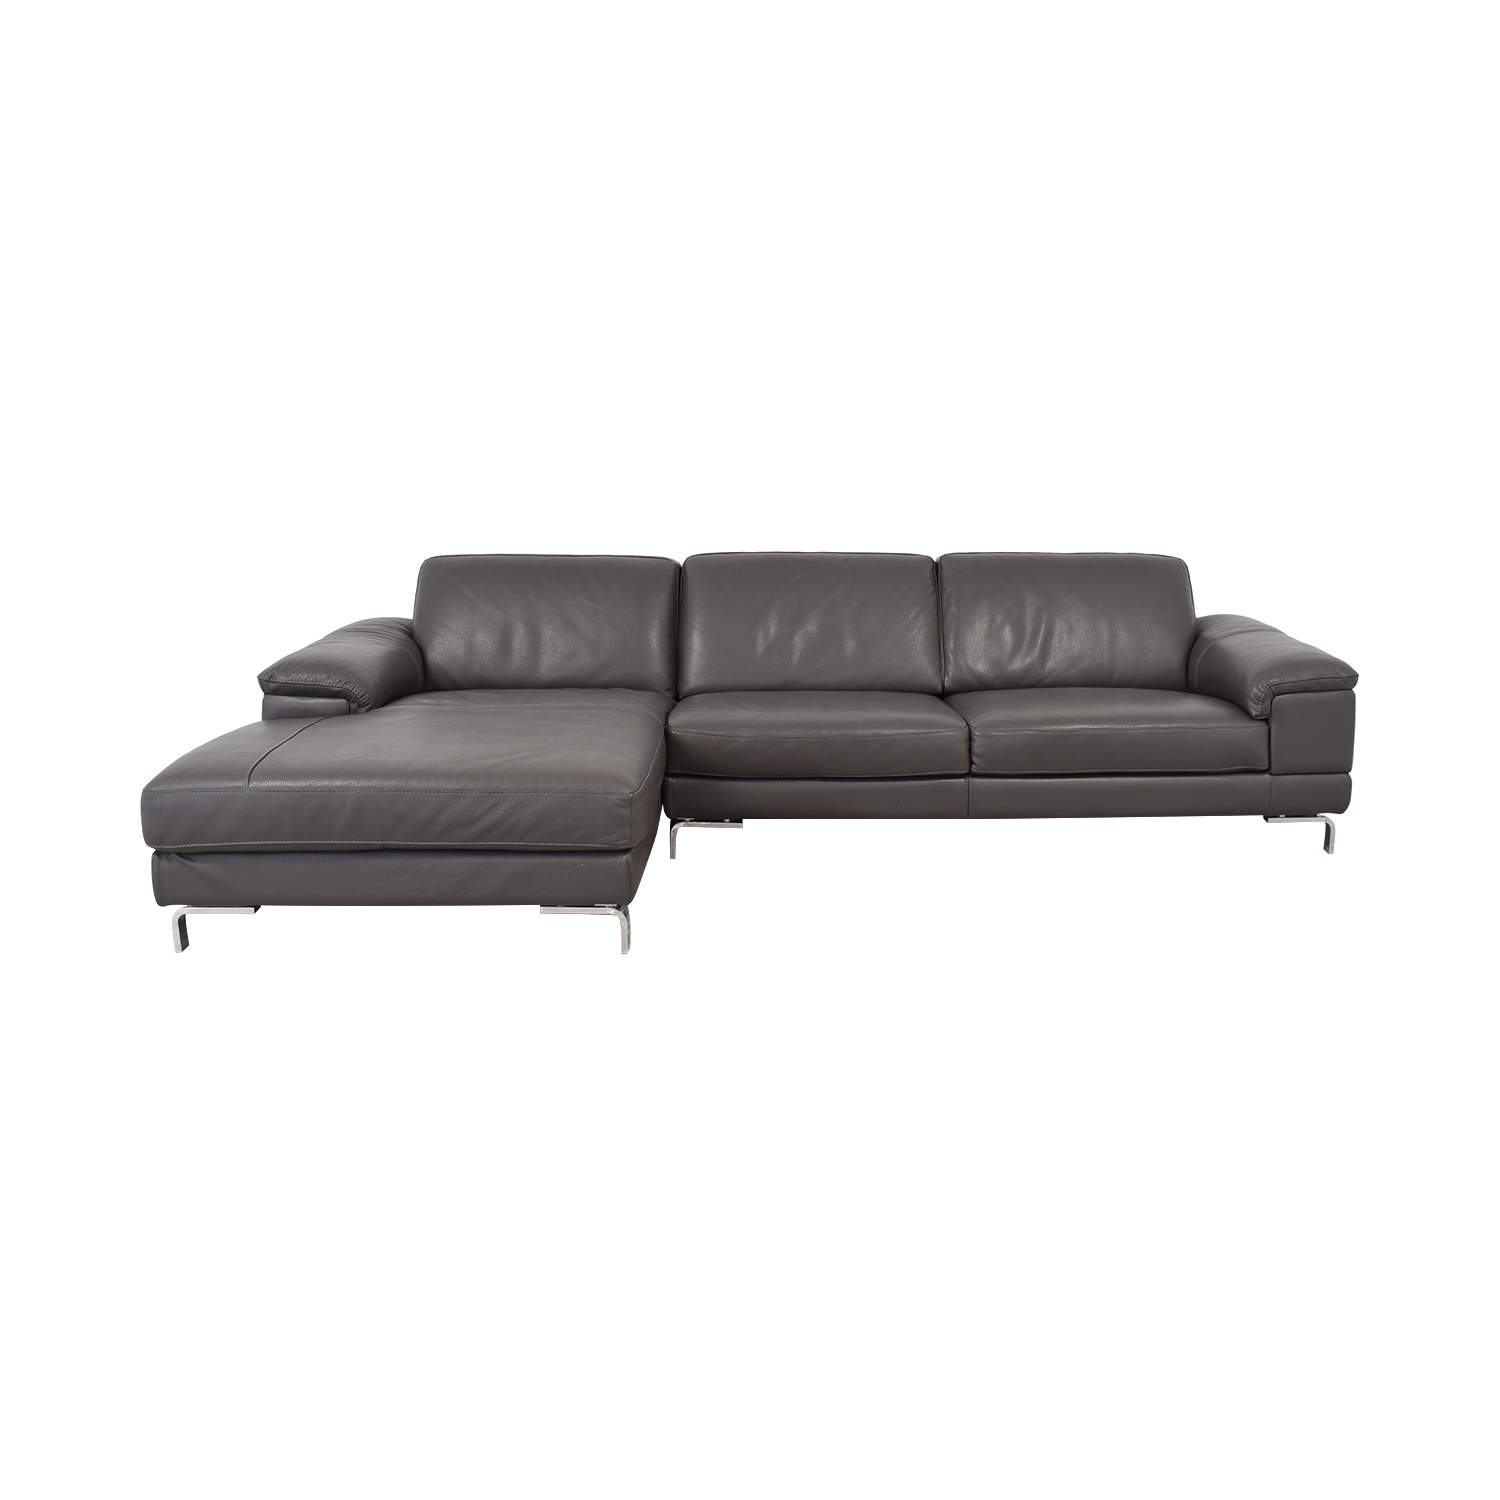 buy Nicoletti Home Nicoletti Dorian Chaise Sectional Sofa online